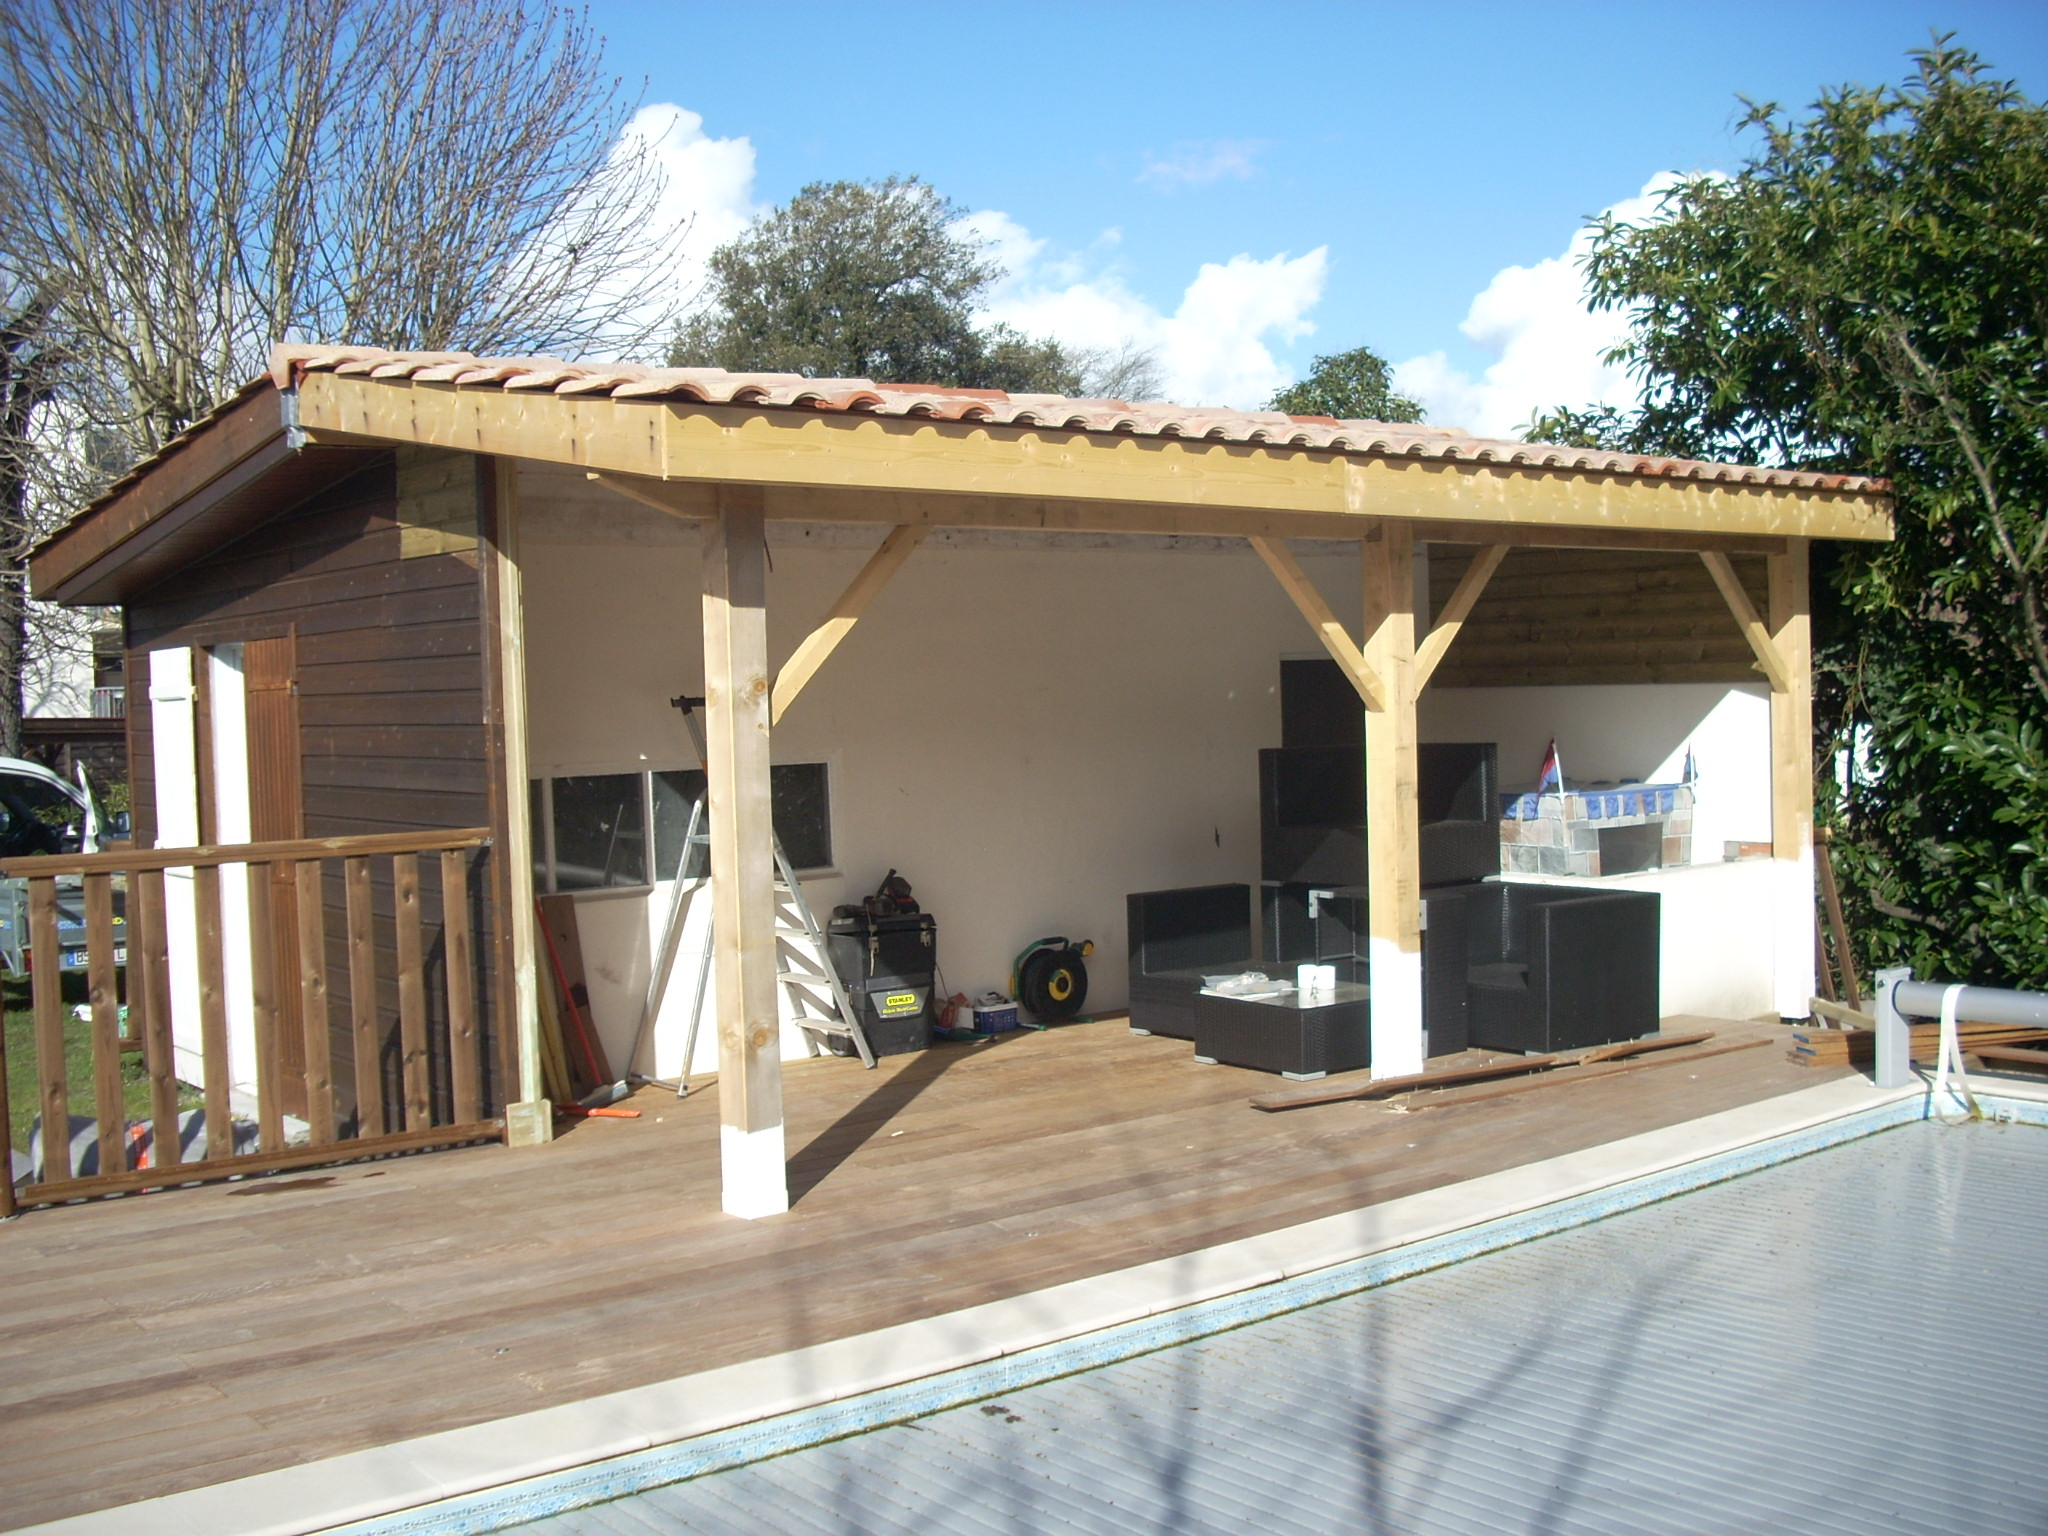 Rnovation de Pool House Lacanau charpente traditionelle Terrasse Ip  ARTISAN CHARPENTE MENUISERIE